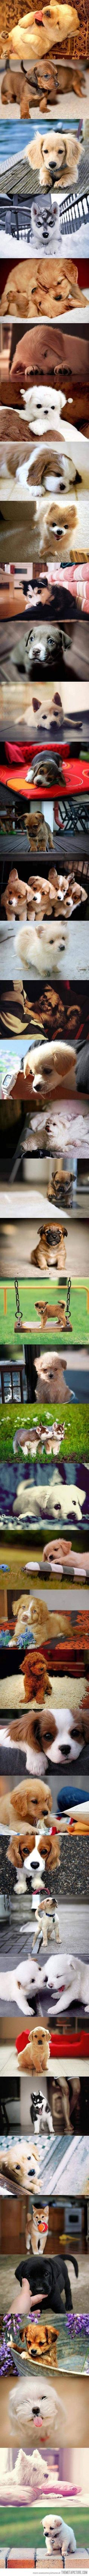 Yes, they grow up but hey! Enjoy!   Puppies!!!